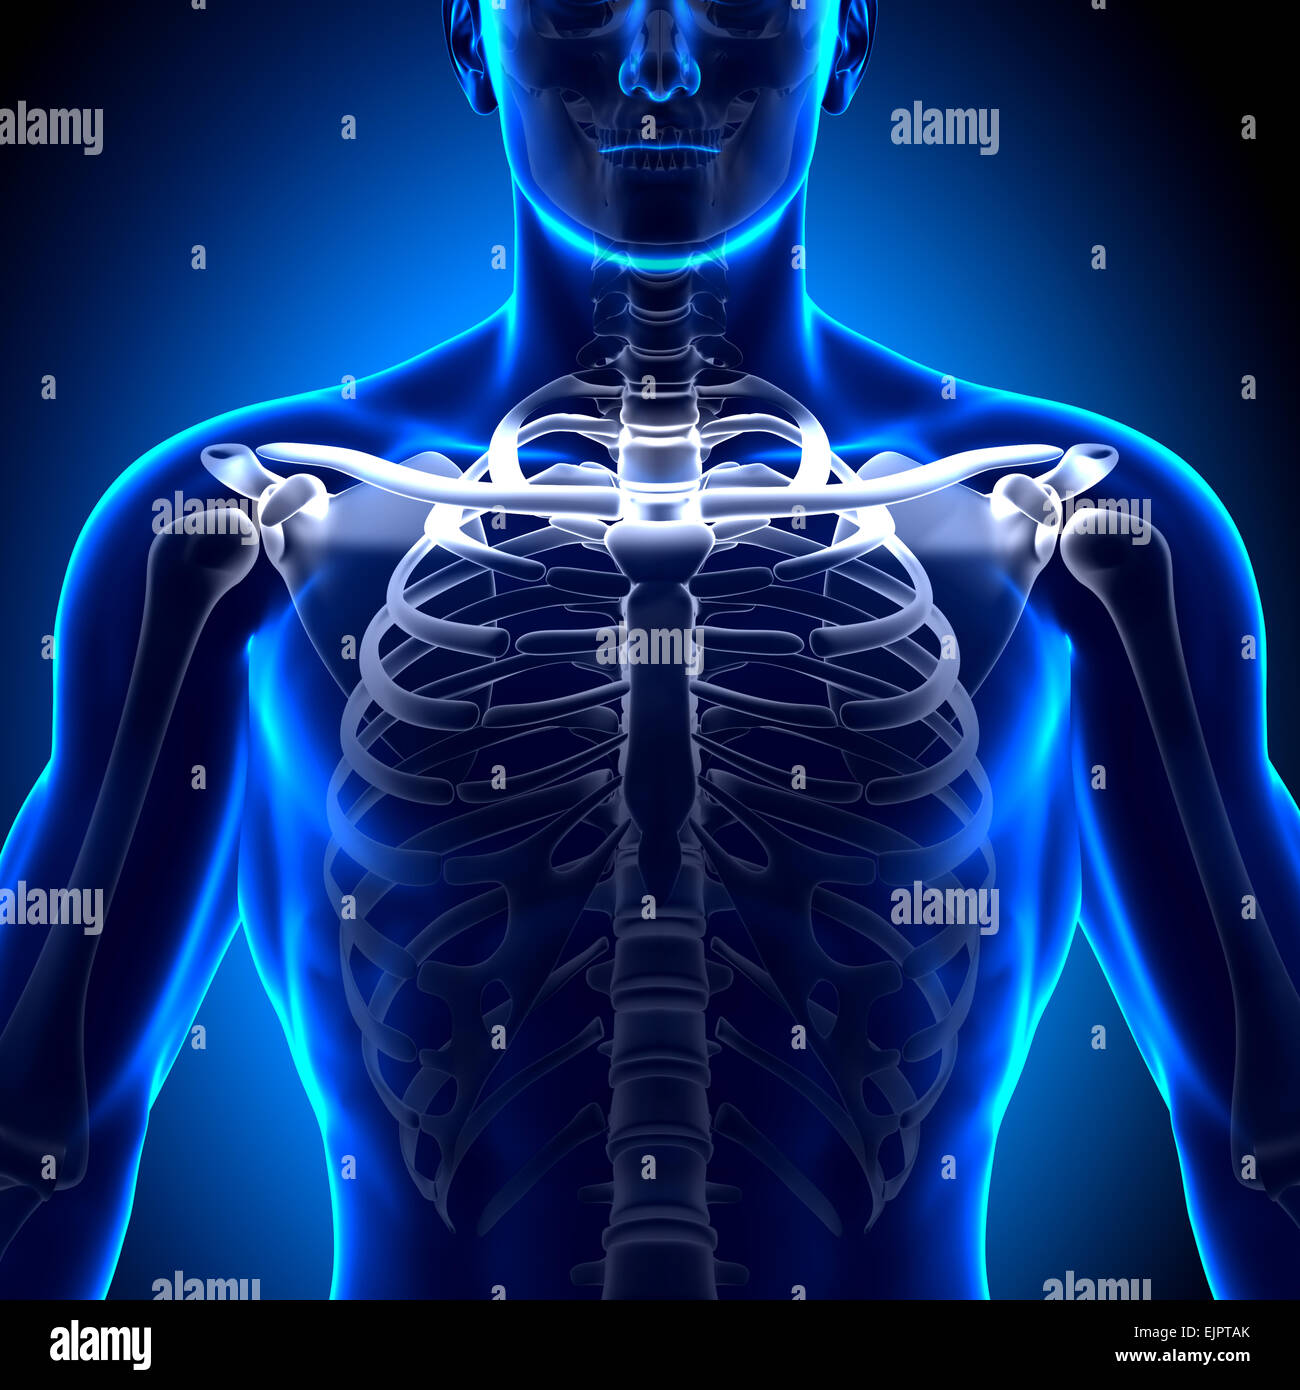 Male Clavicle Bone Anatomy Anatomy Bones Stock Photo 80407339 Alamy